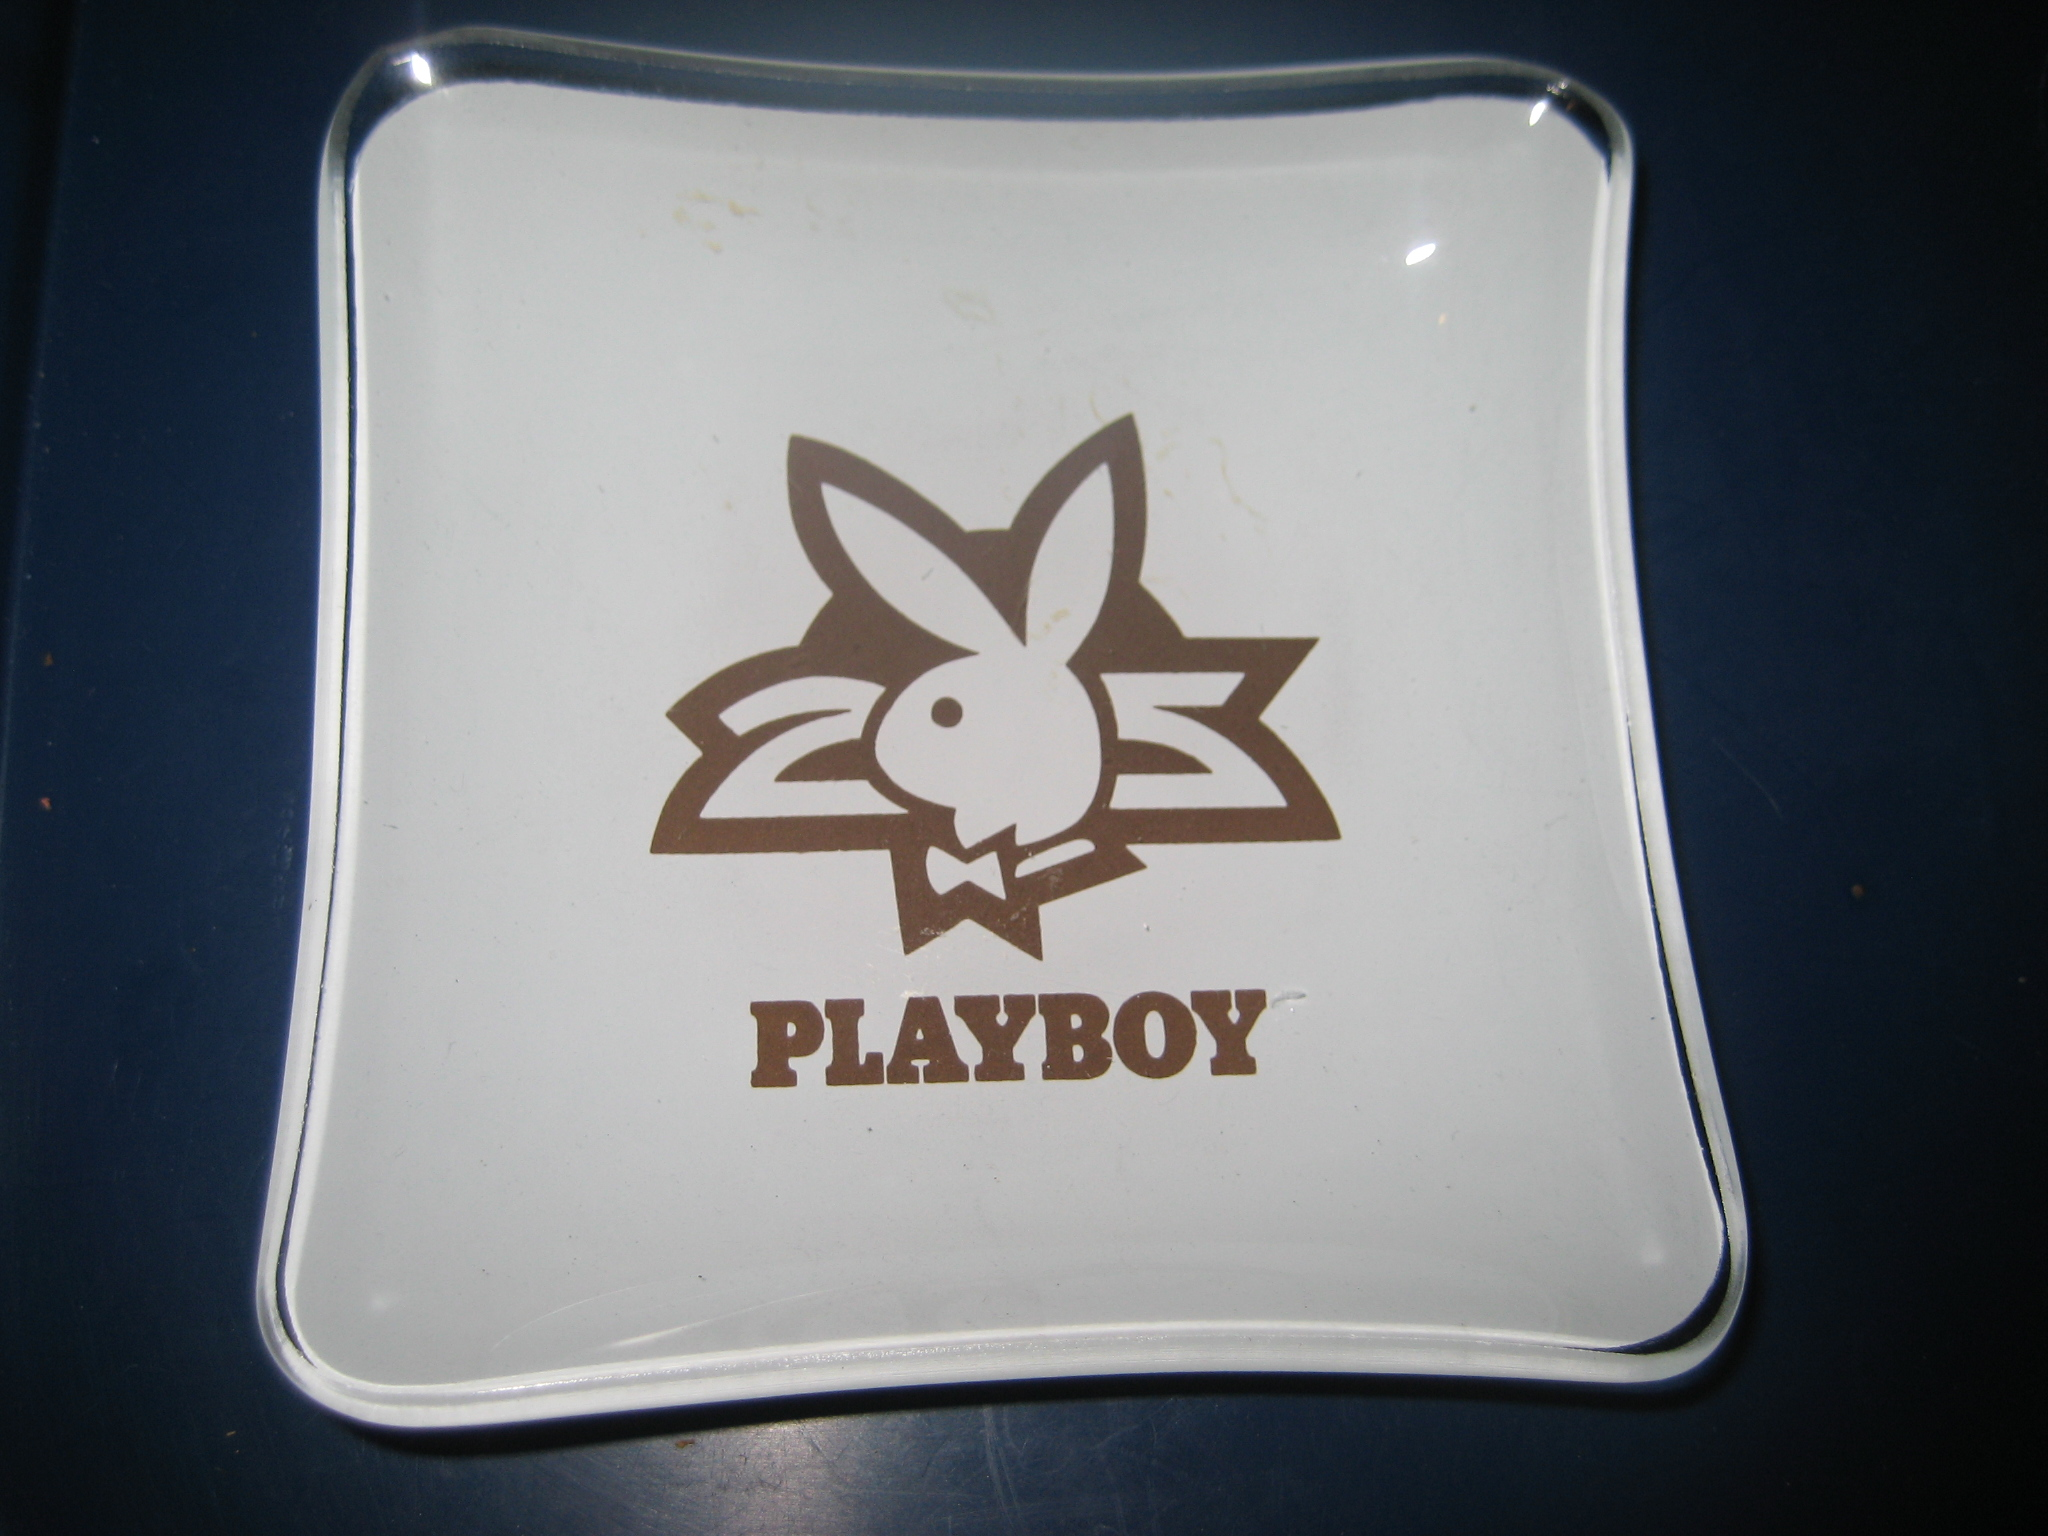 Playboy Club 25th Anniversary Ashtray